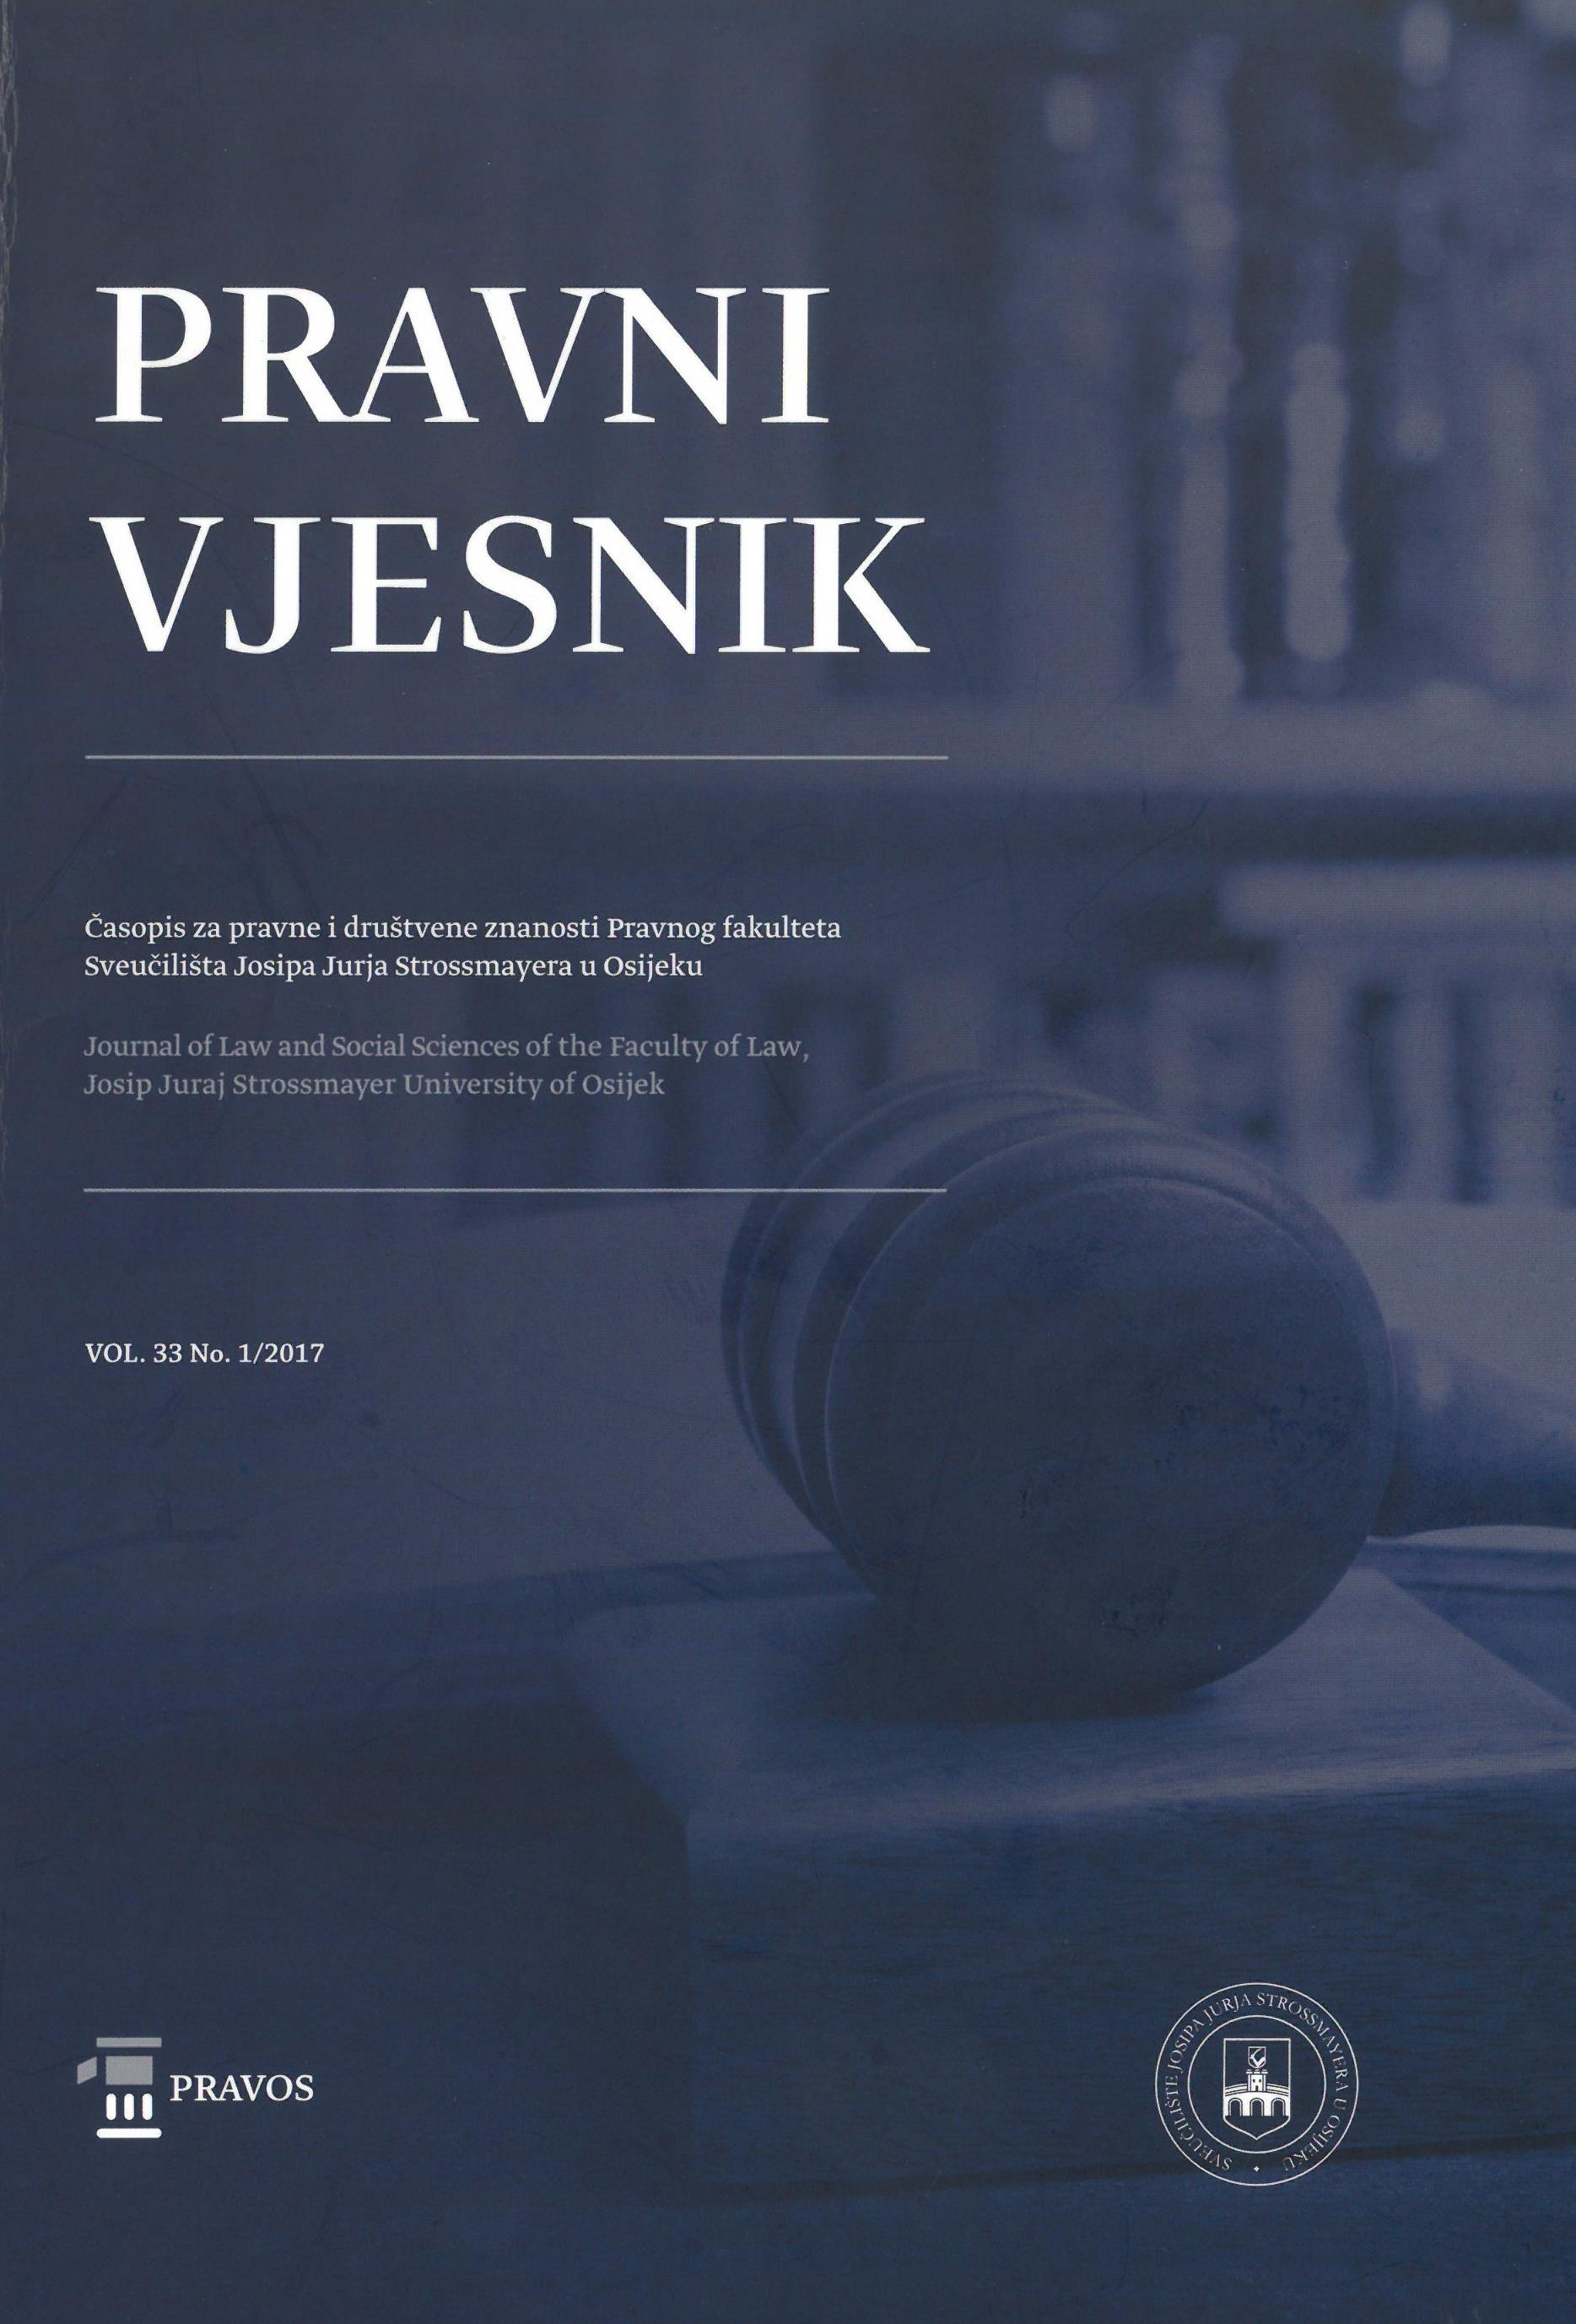 FAMILY CONSENT FOR ORGAN OR TISSUE REMOVAL FROM A DECEASED PERSON FOR TRANSPLANTATION PURPOSES IN THE REPUBLIC OF CROATIA Cover Image